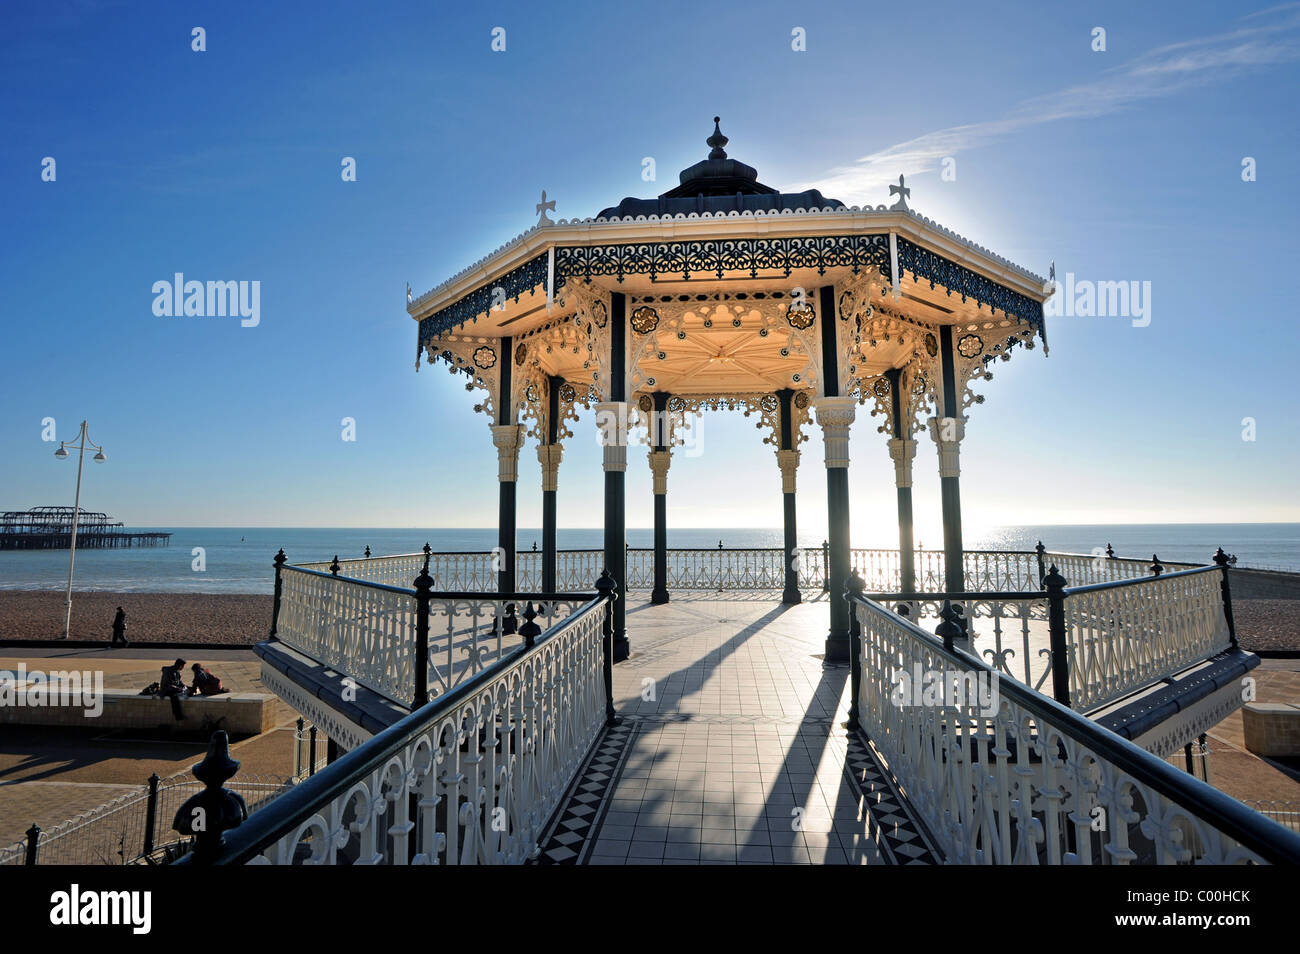 The recently restored Victorian bandstand on Brighton seafront - Stock Image